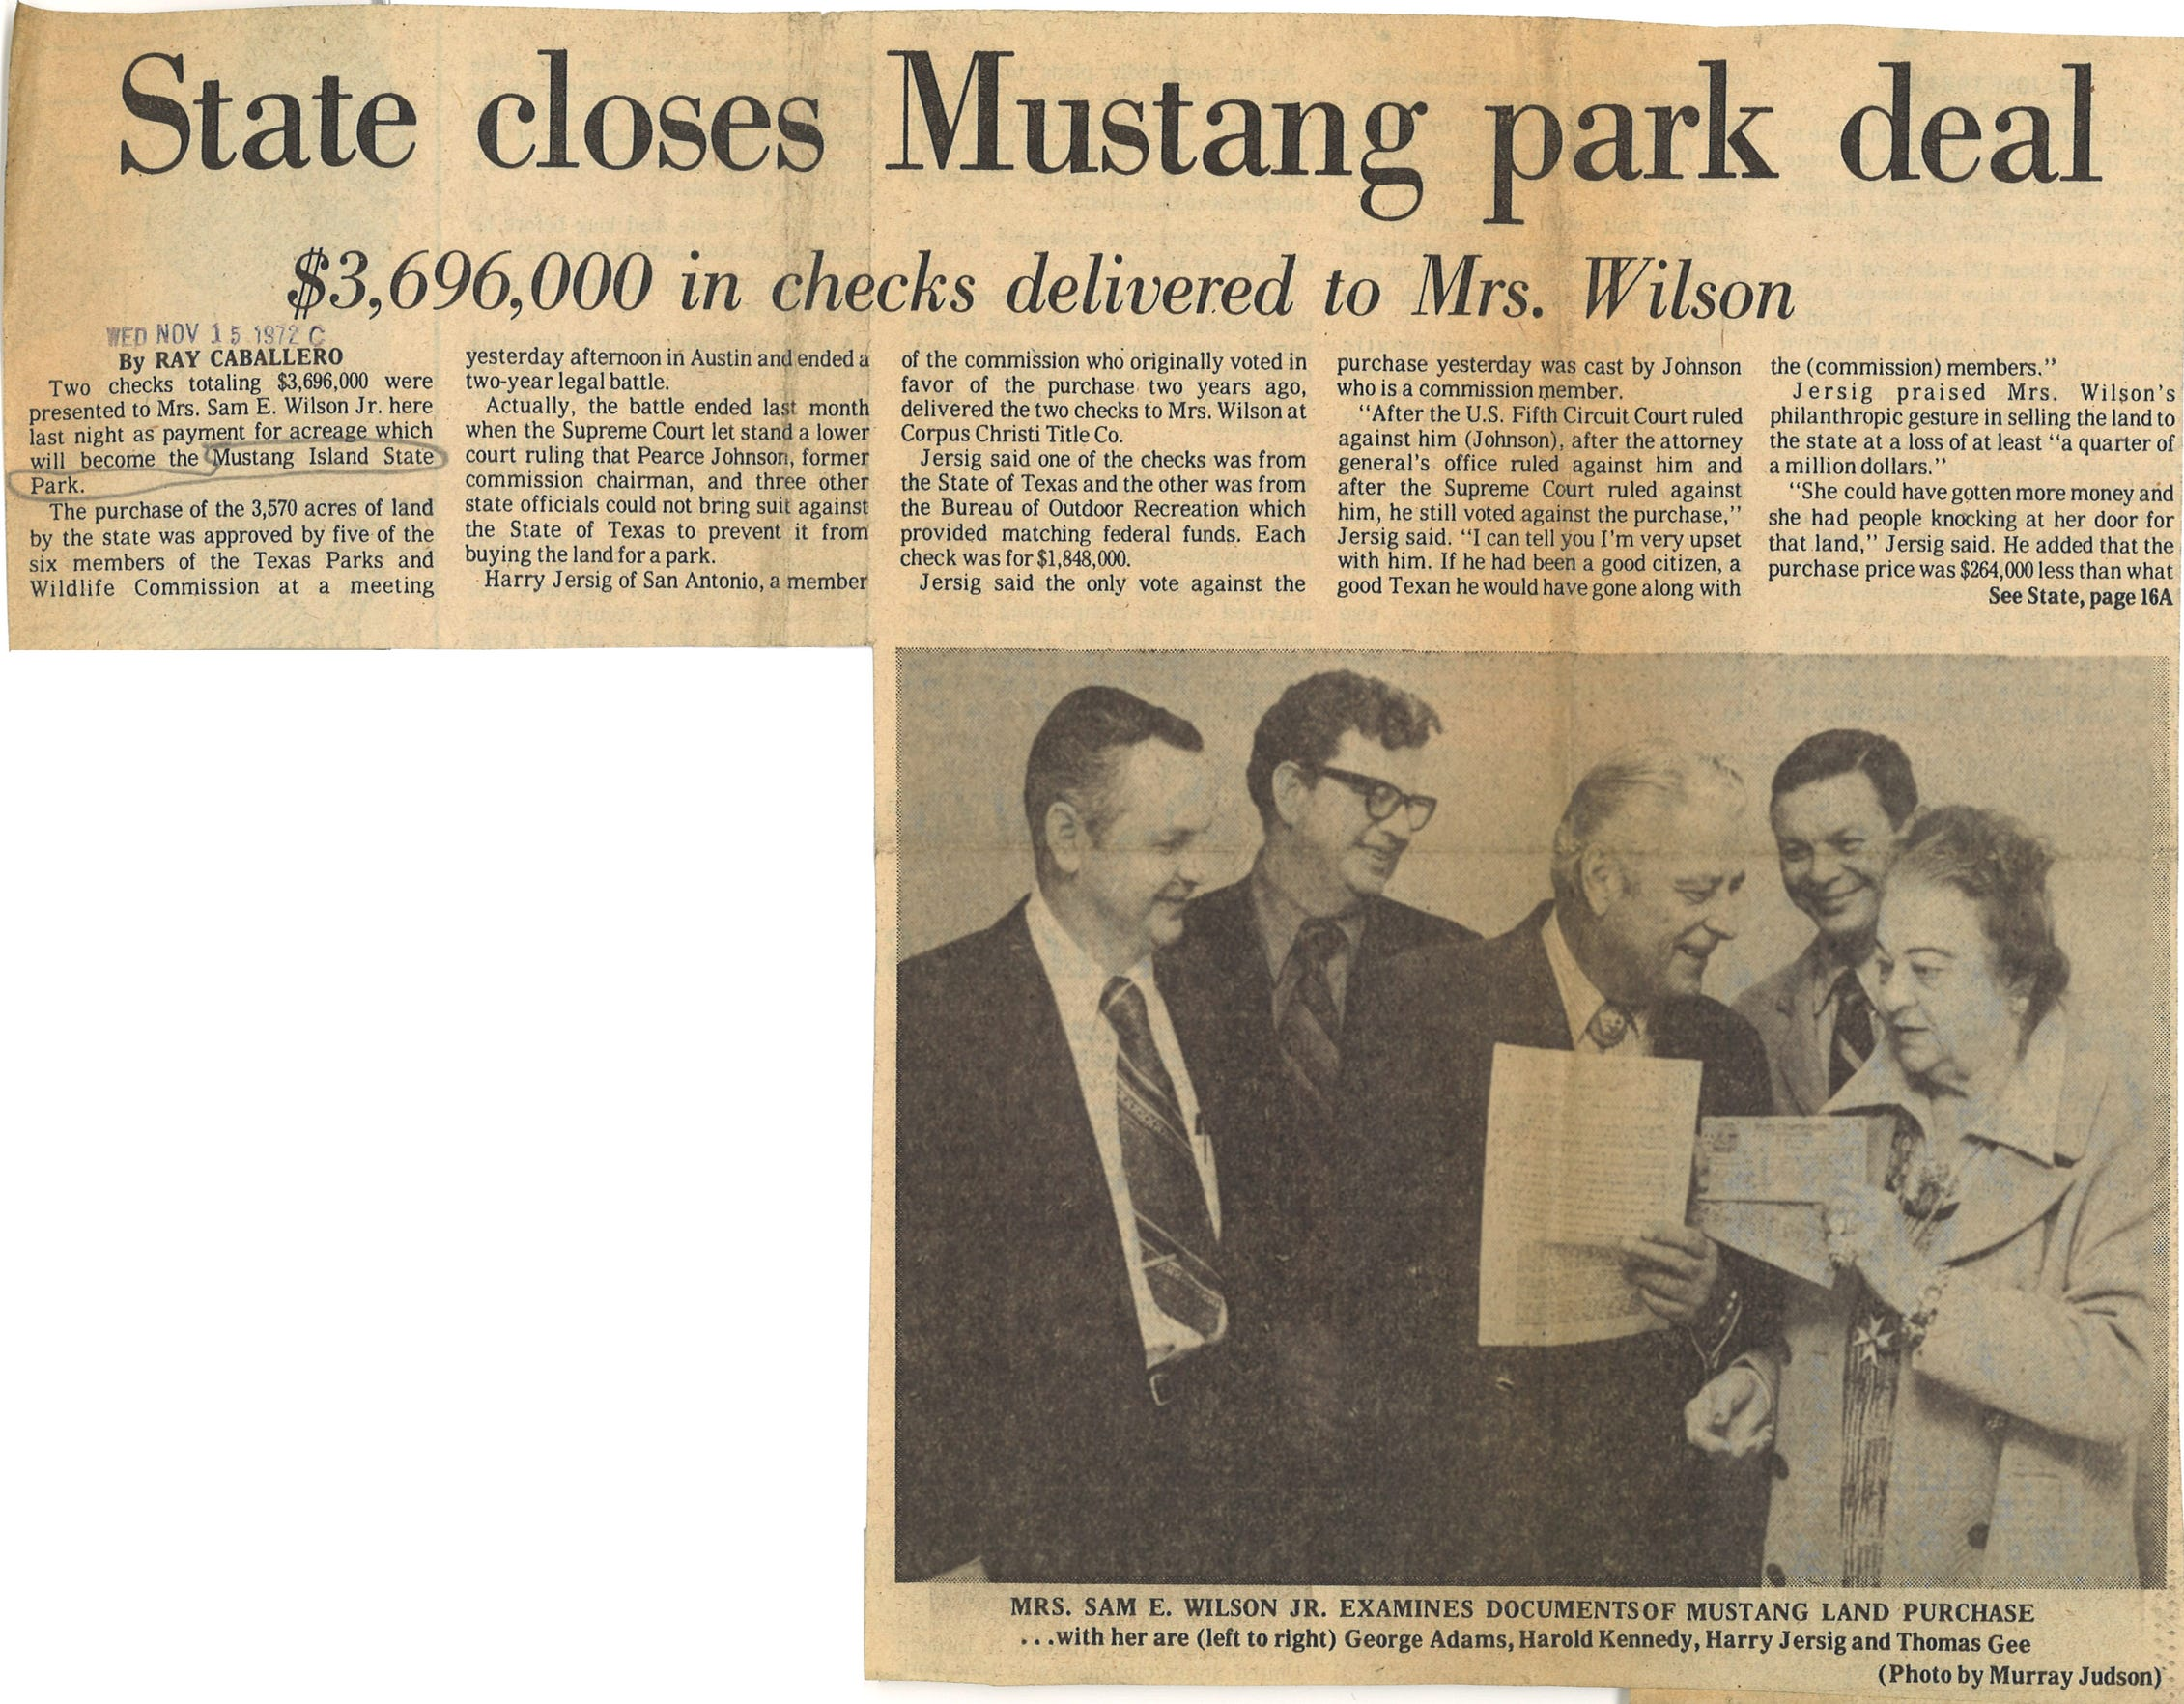 The state of Texas finally purchased the parcel of land Ada Wilson was selling to create Mustang Island State Park in November 1972.